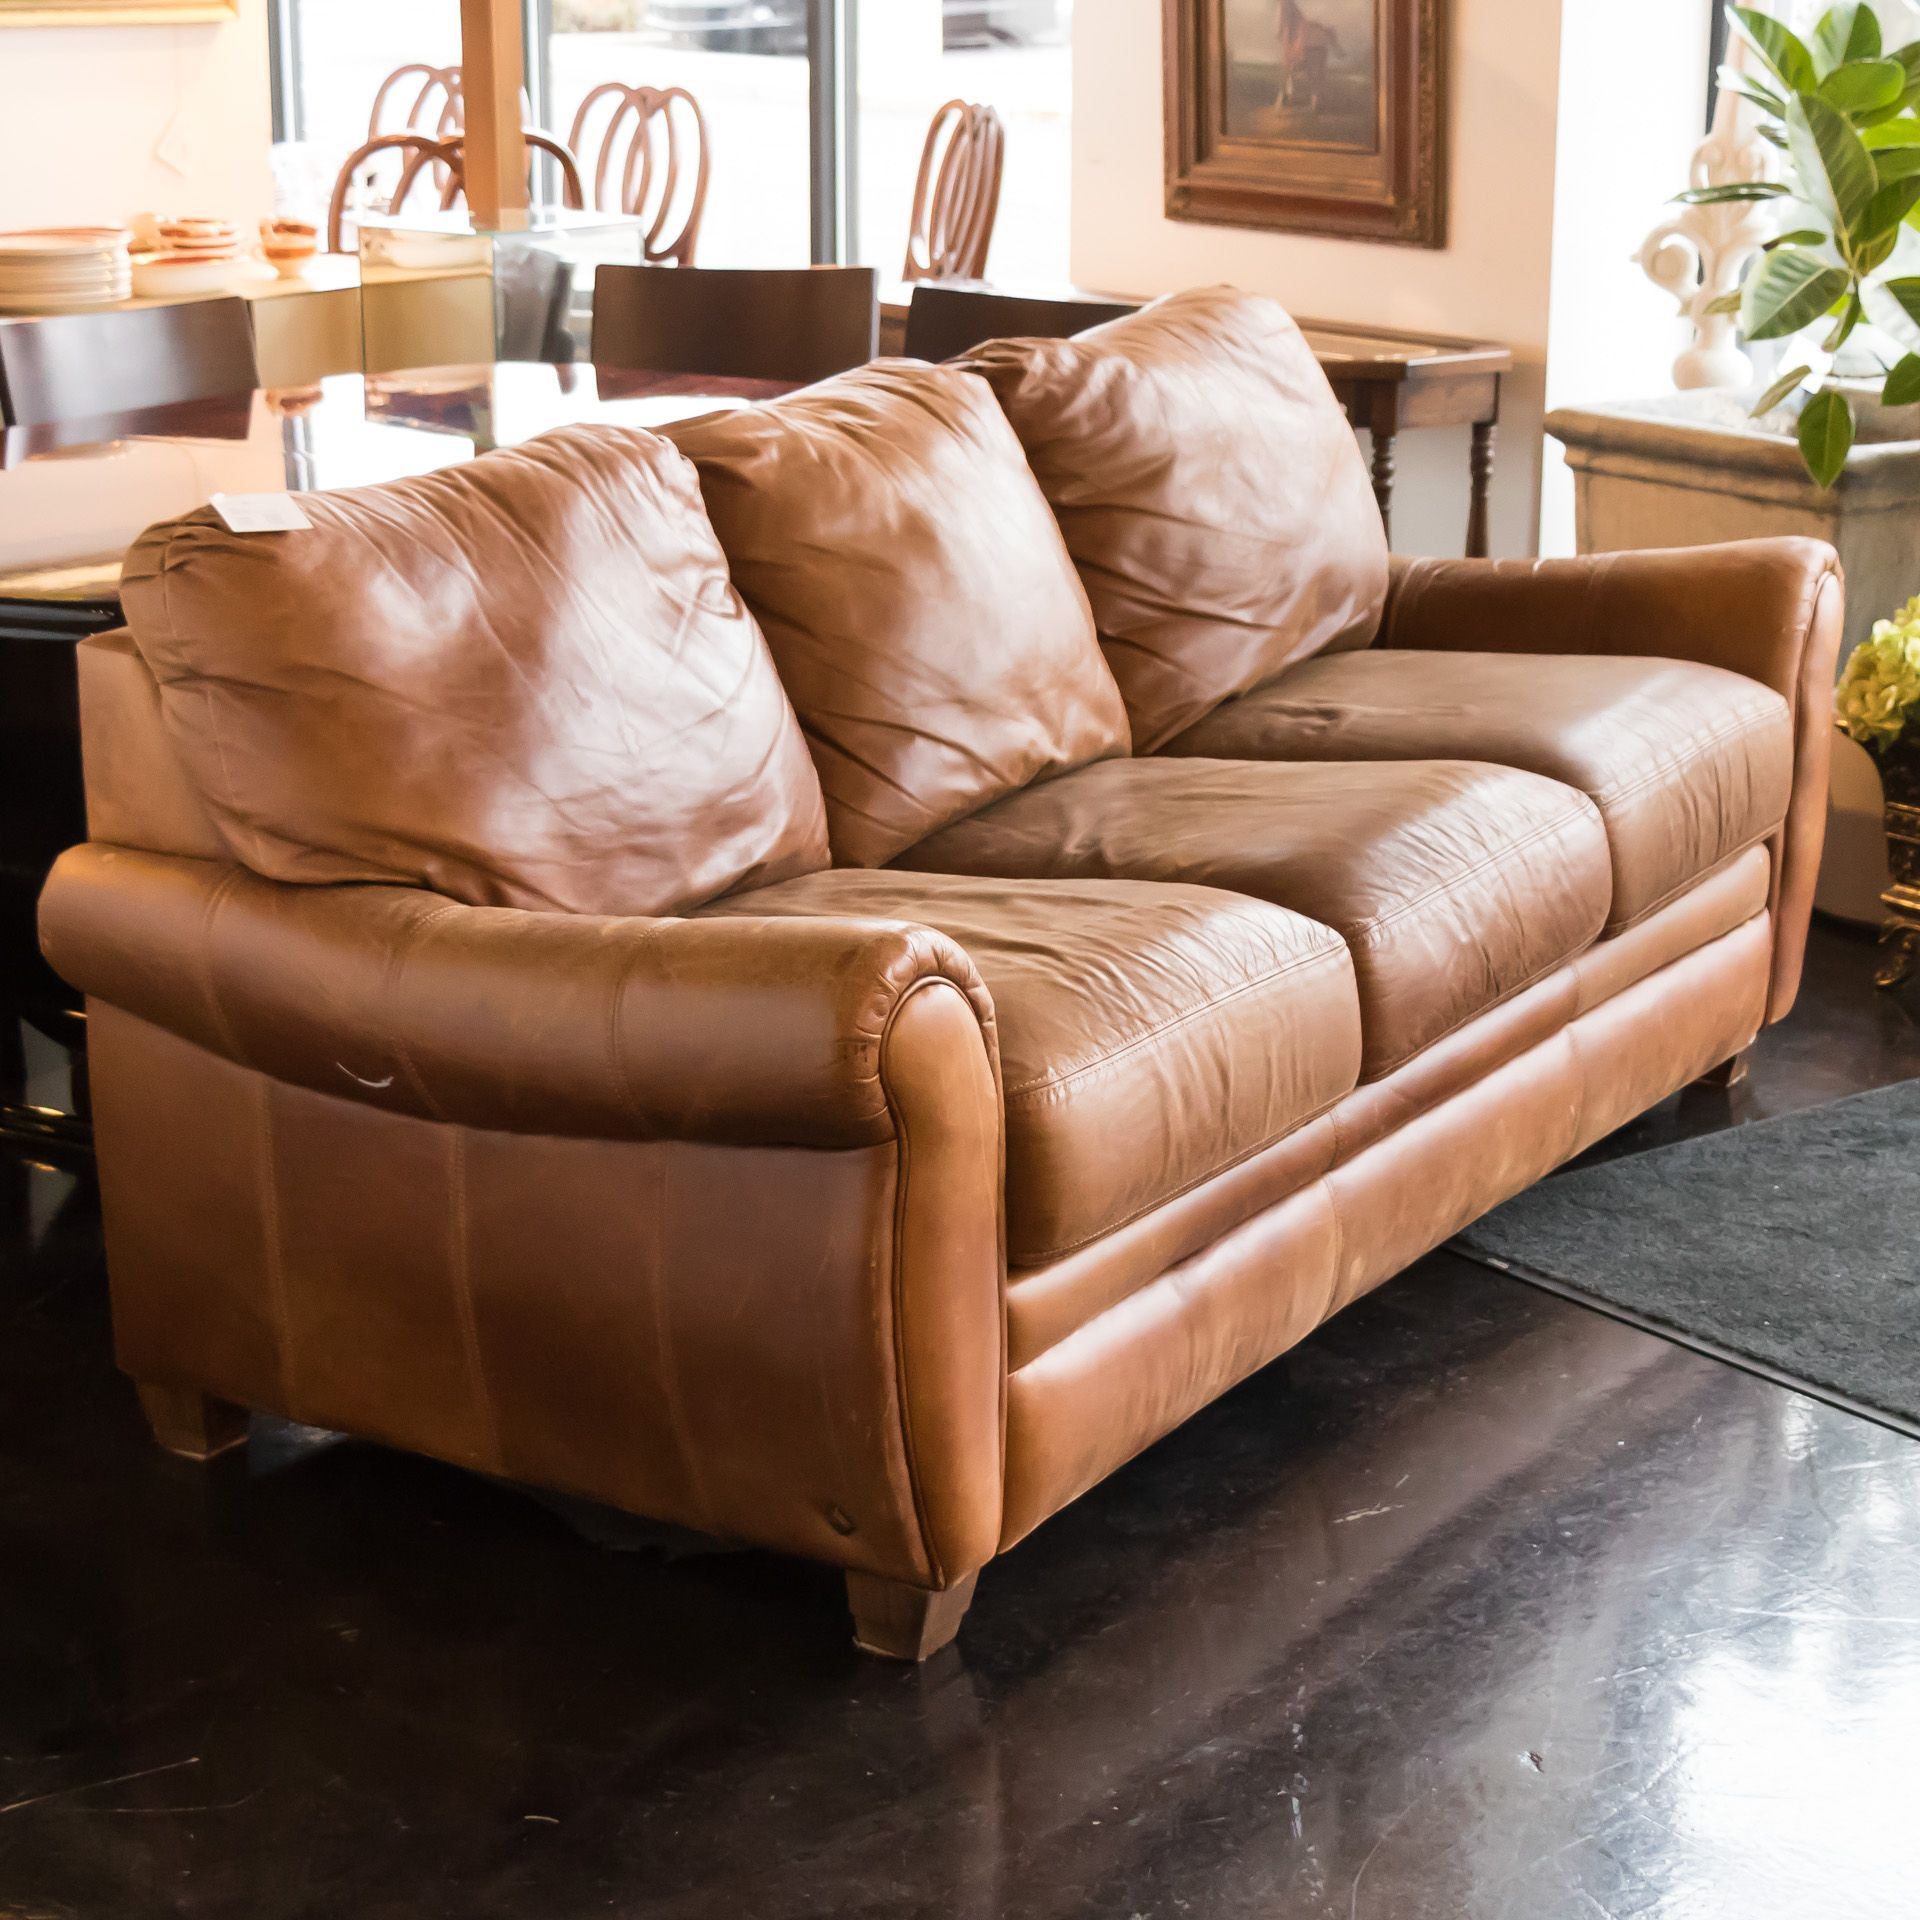 Pottery Barn Brown Leather Sleeper Sofa Leather Sleeper Sofa Sofa Sleeper Sofa